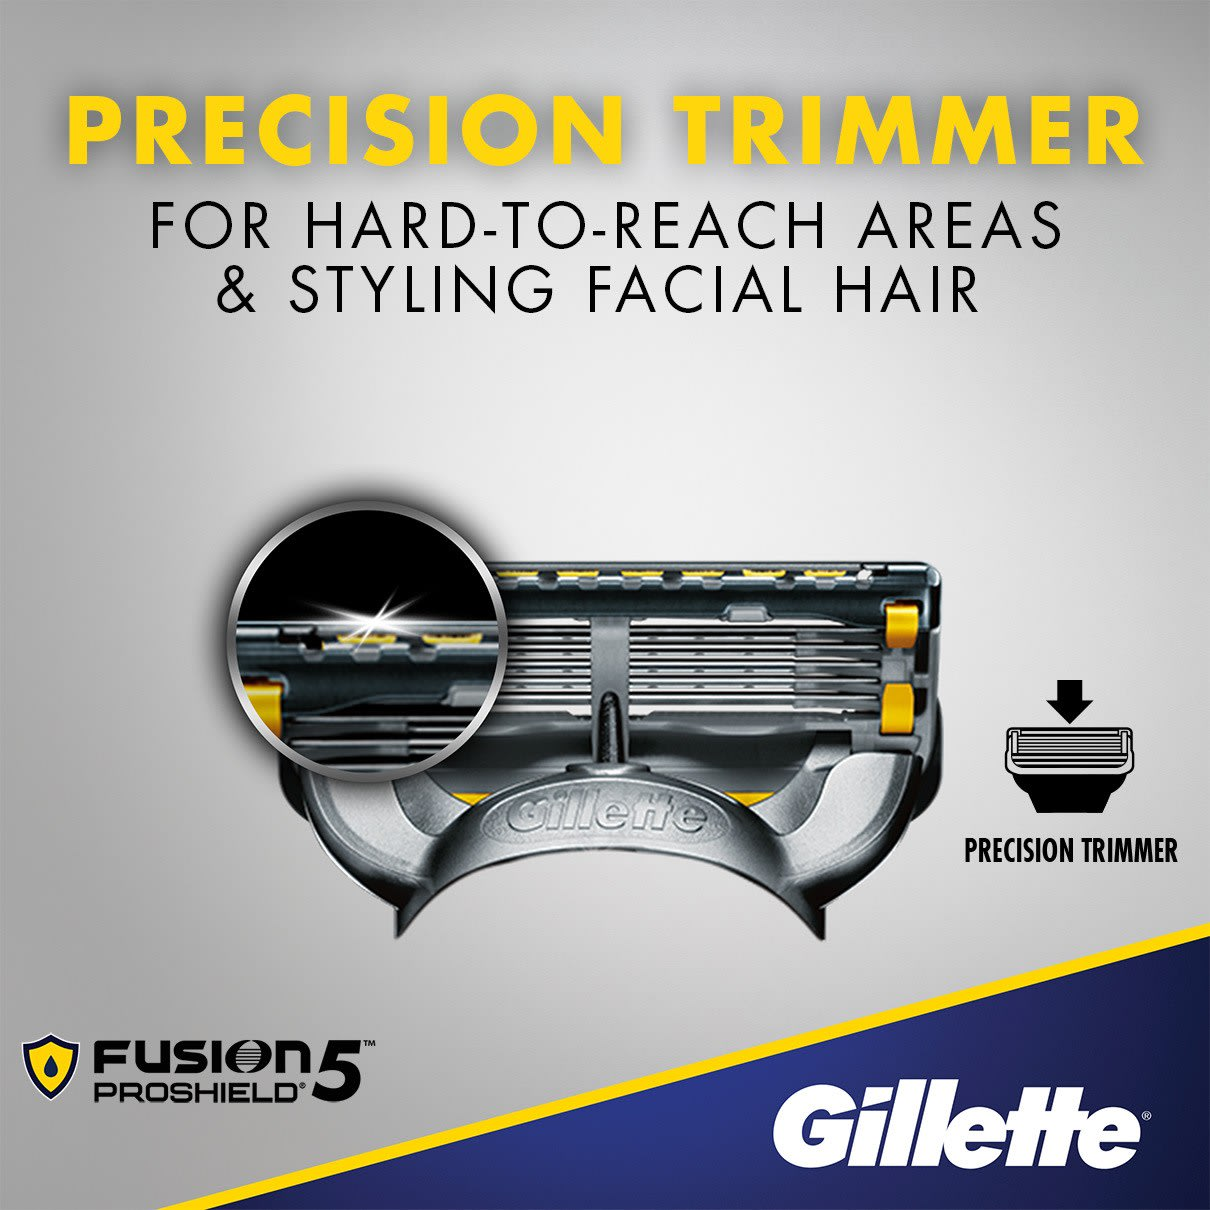 5 anti-friction blades, precision trimmer